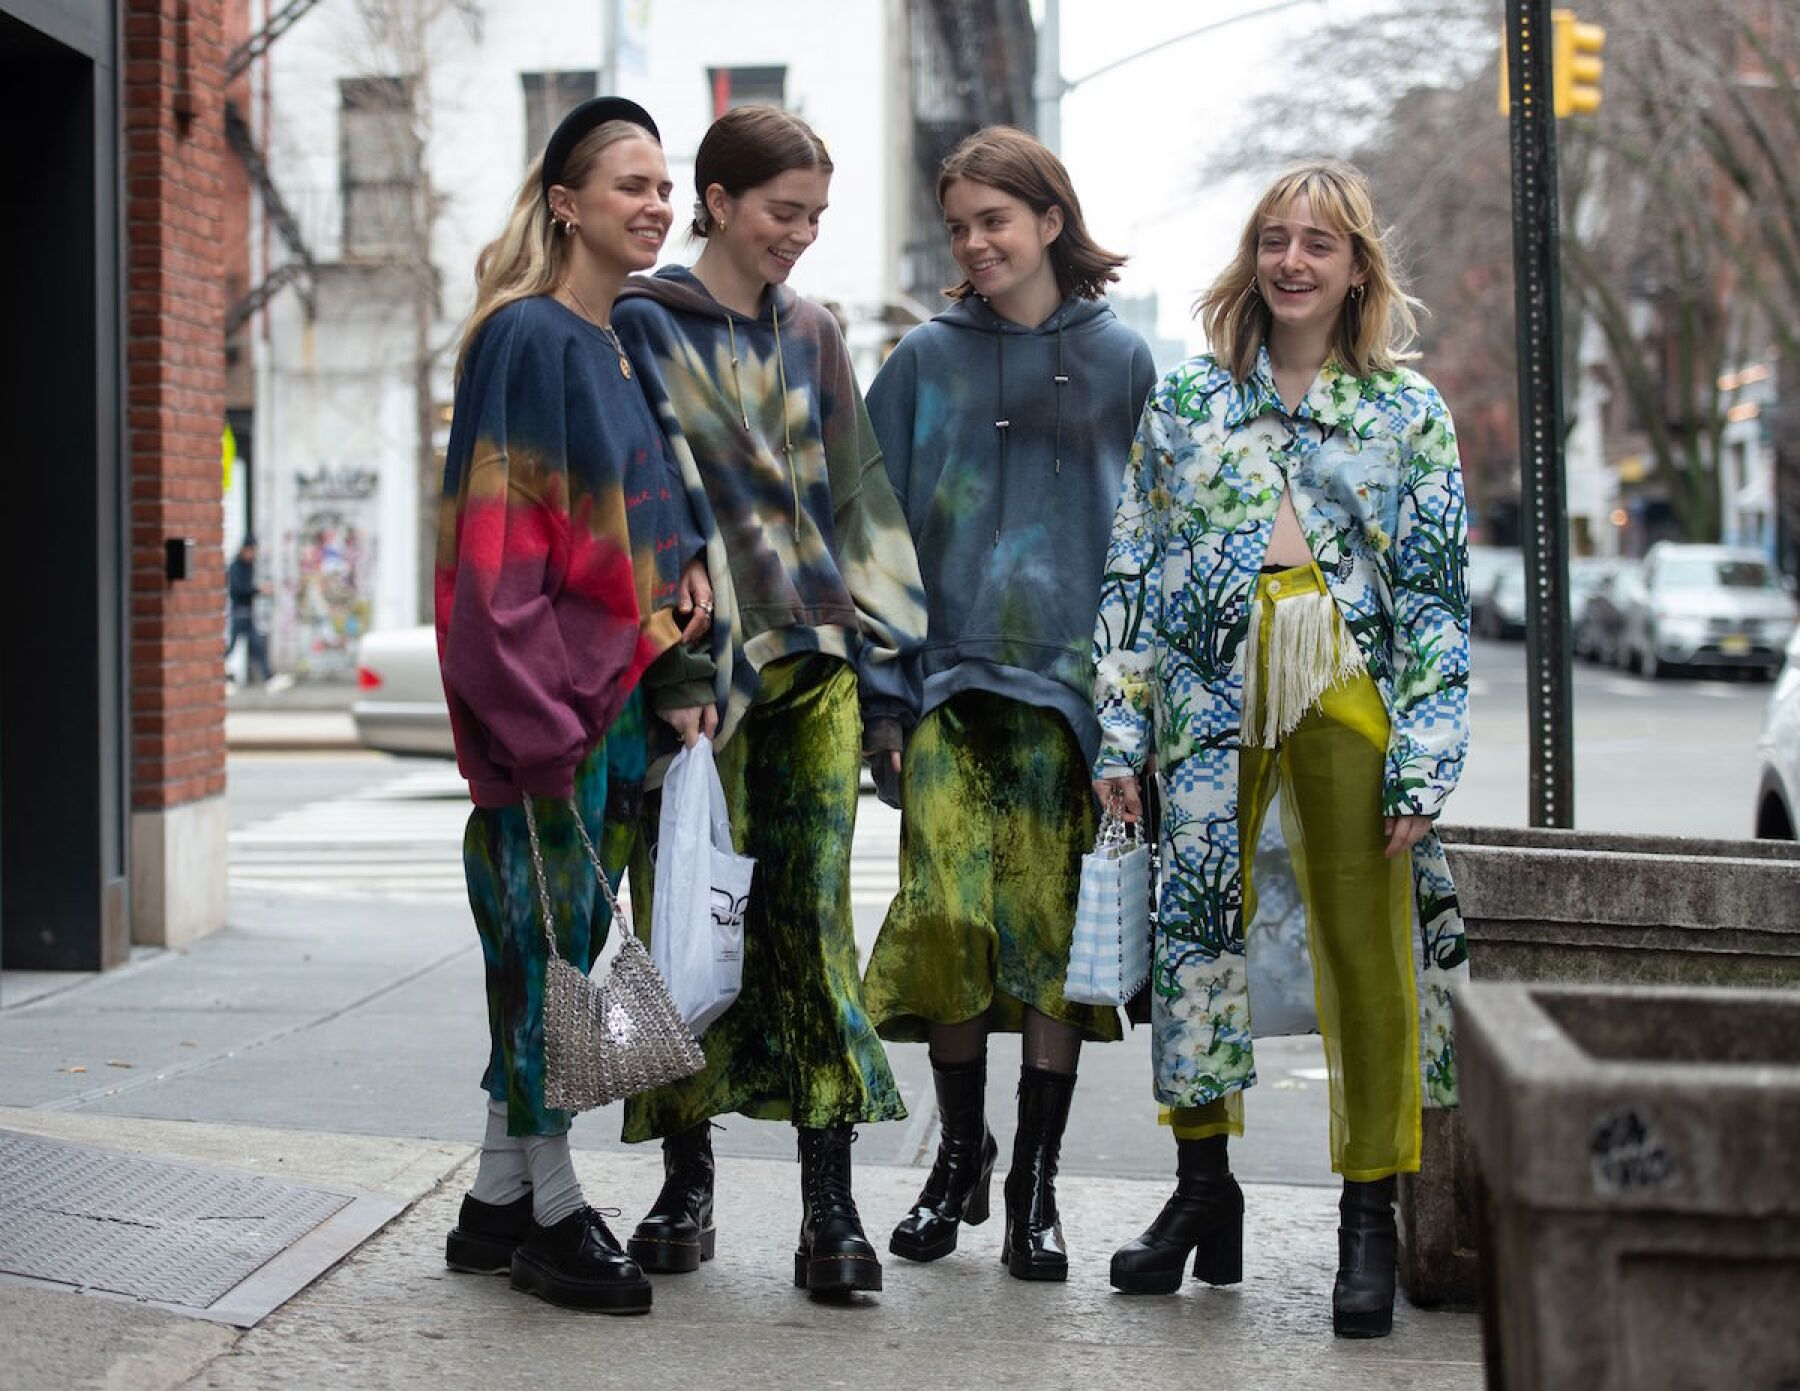 Street Style, Fall Winter 2019, New York Fashion Week, USA - 07 Feb 2019